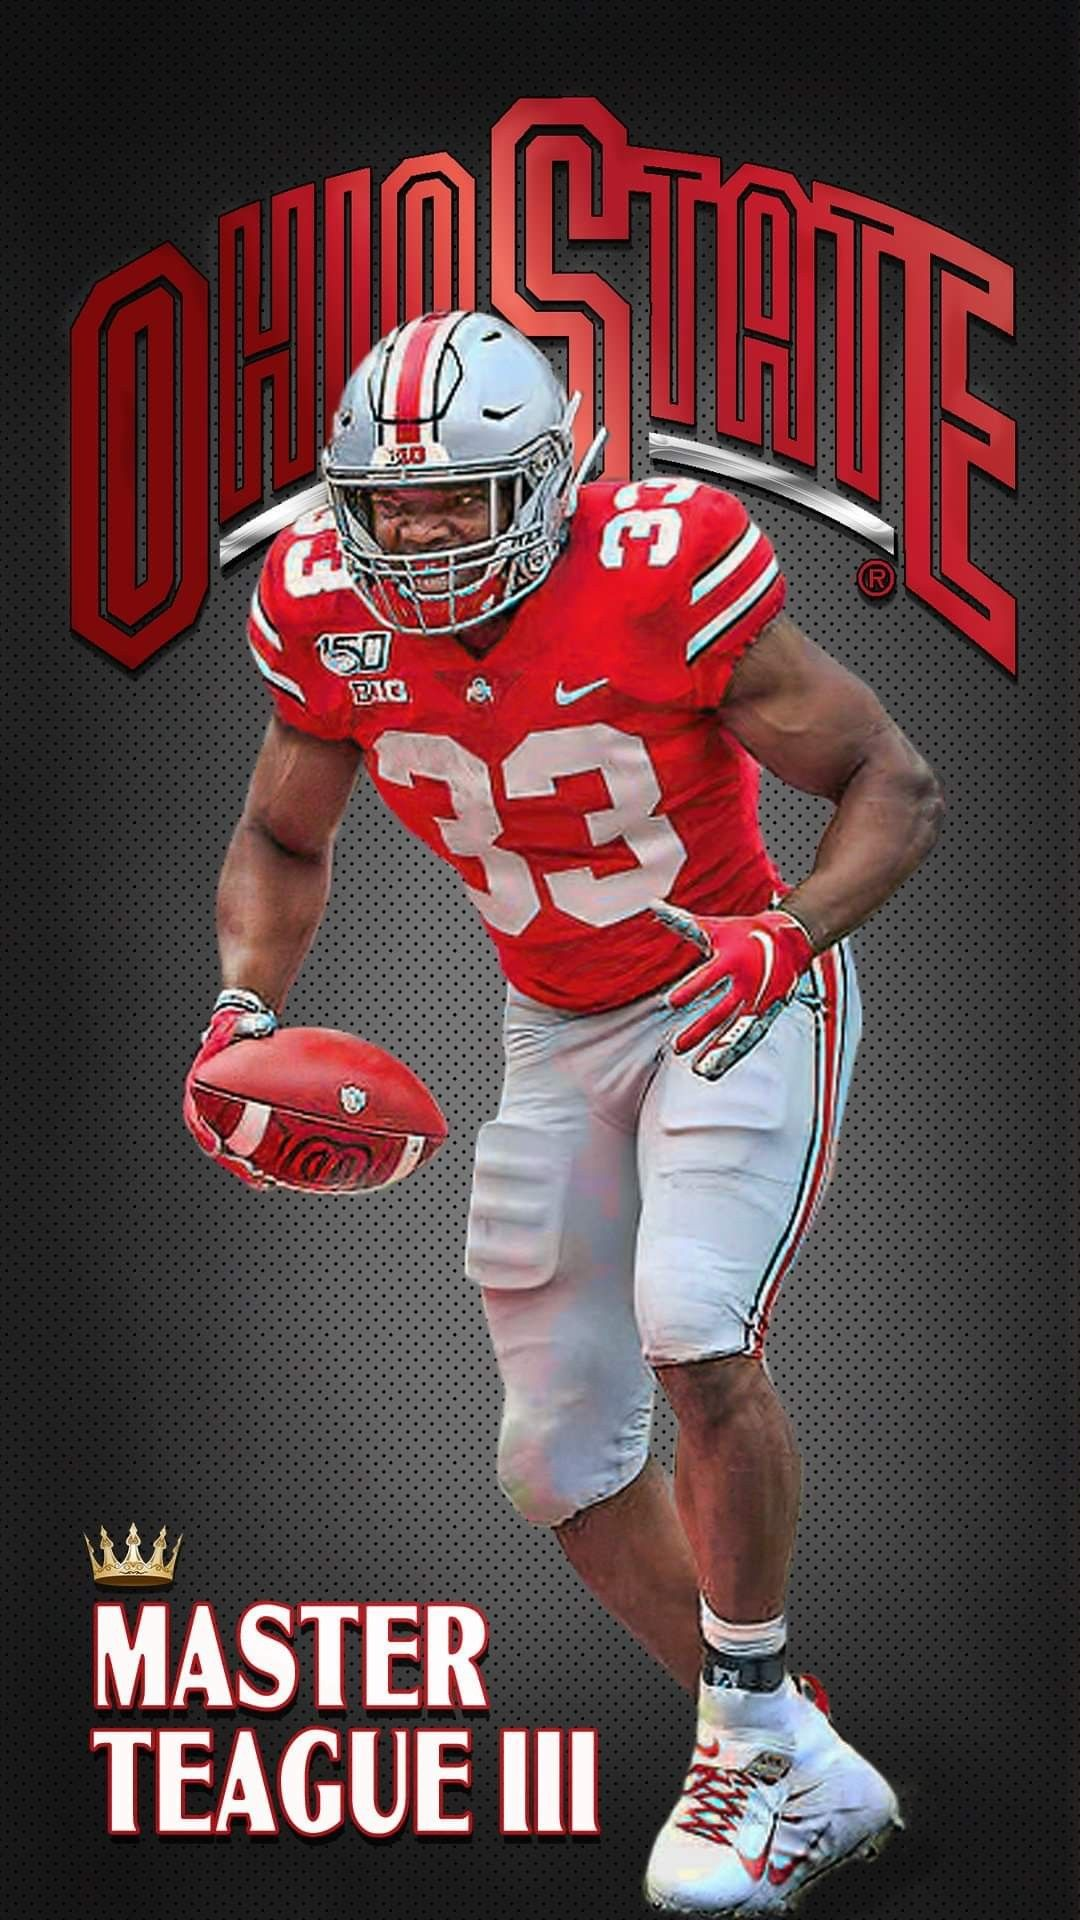 Pin By Kelly R On Buckeye Nation In 2020 Ohio State Buckeyes Football Ohio State Buckeyes Baby Ohio State Football